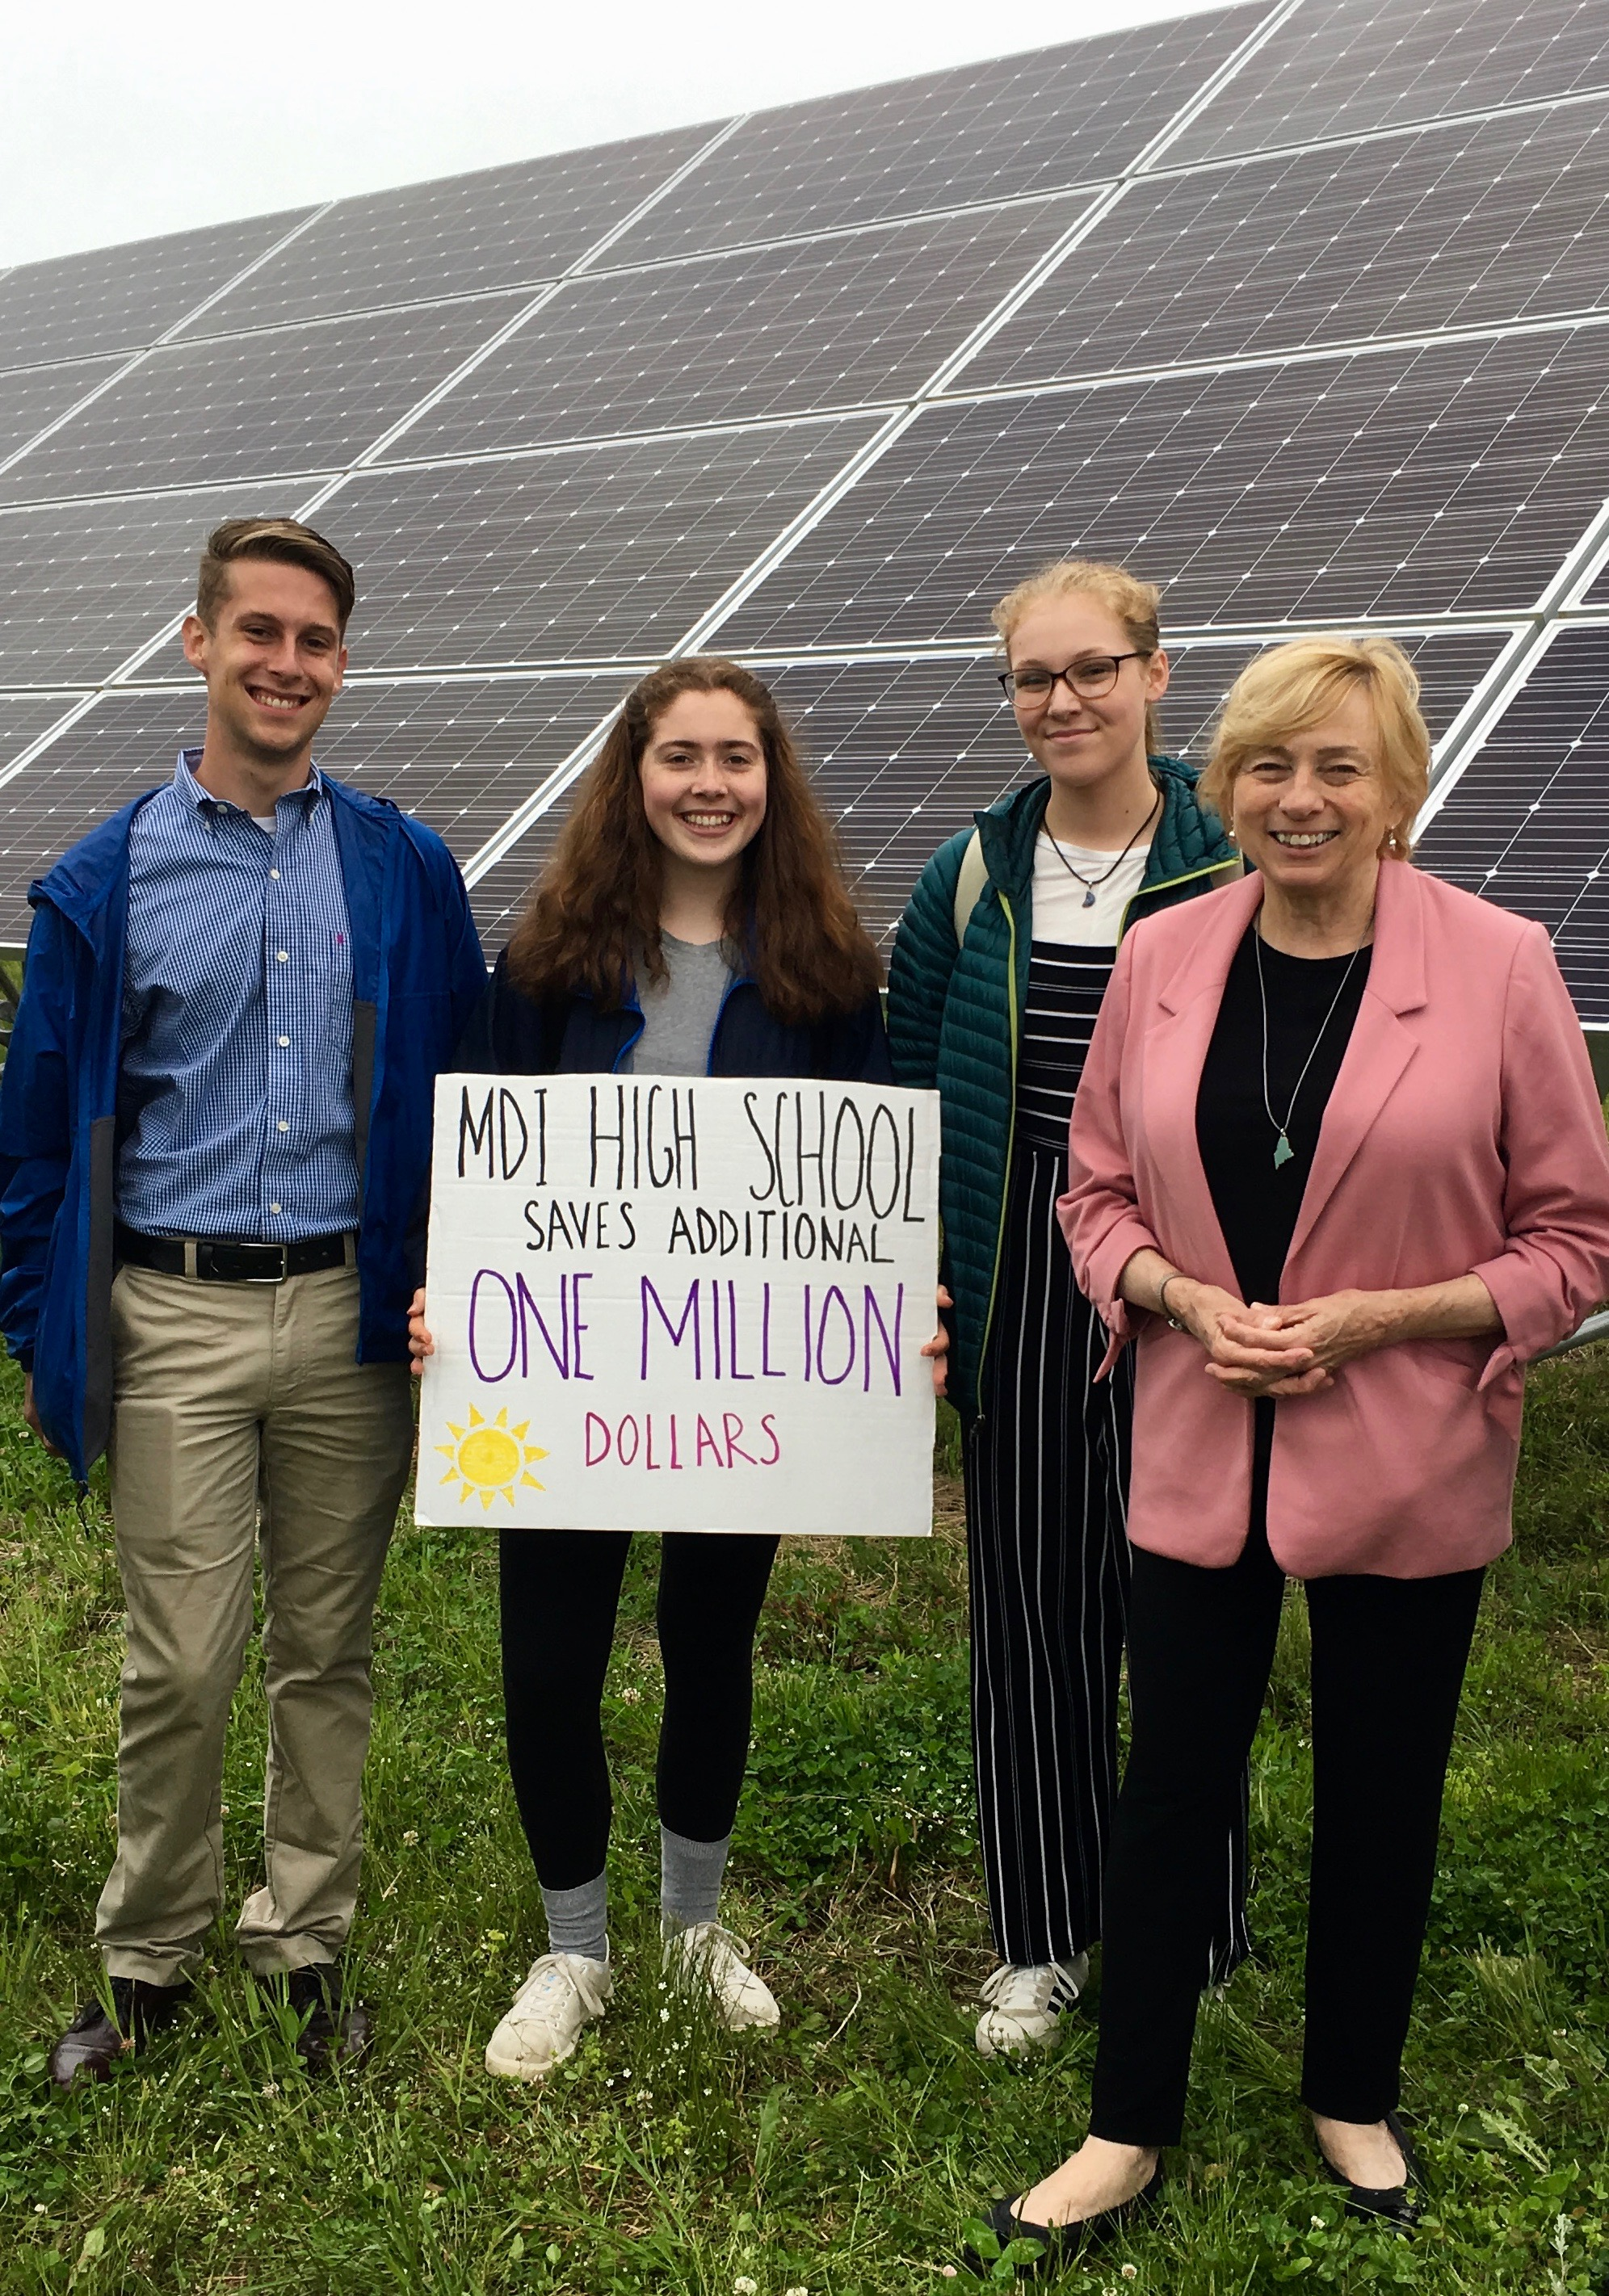 Pictured left to right, ACTT Intern Coordinator Sam Murray, Intern Isabella Childs Michael, Stella Walke, and Governor Janet Mills.